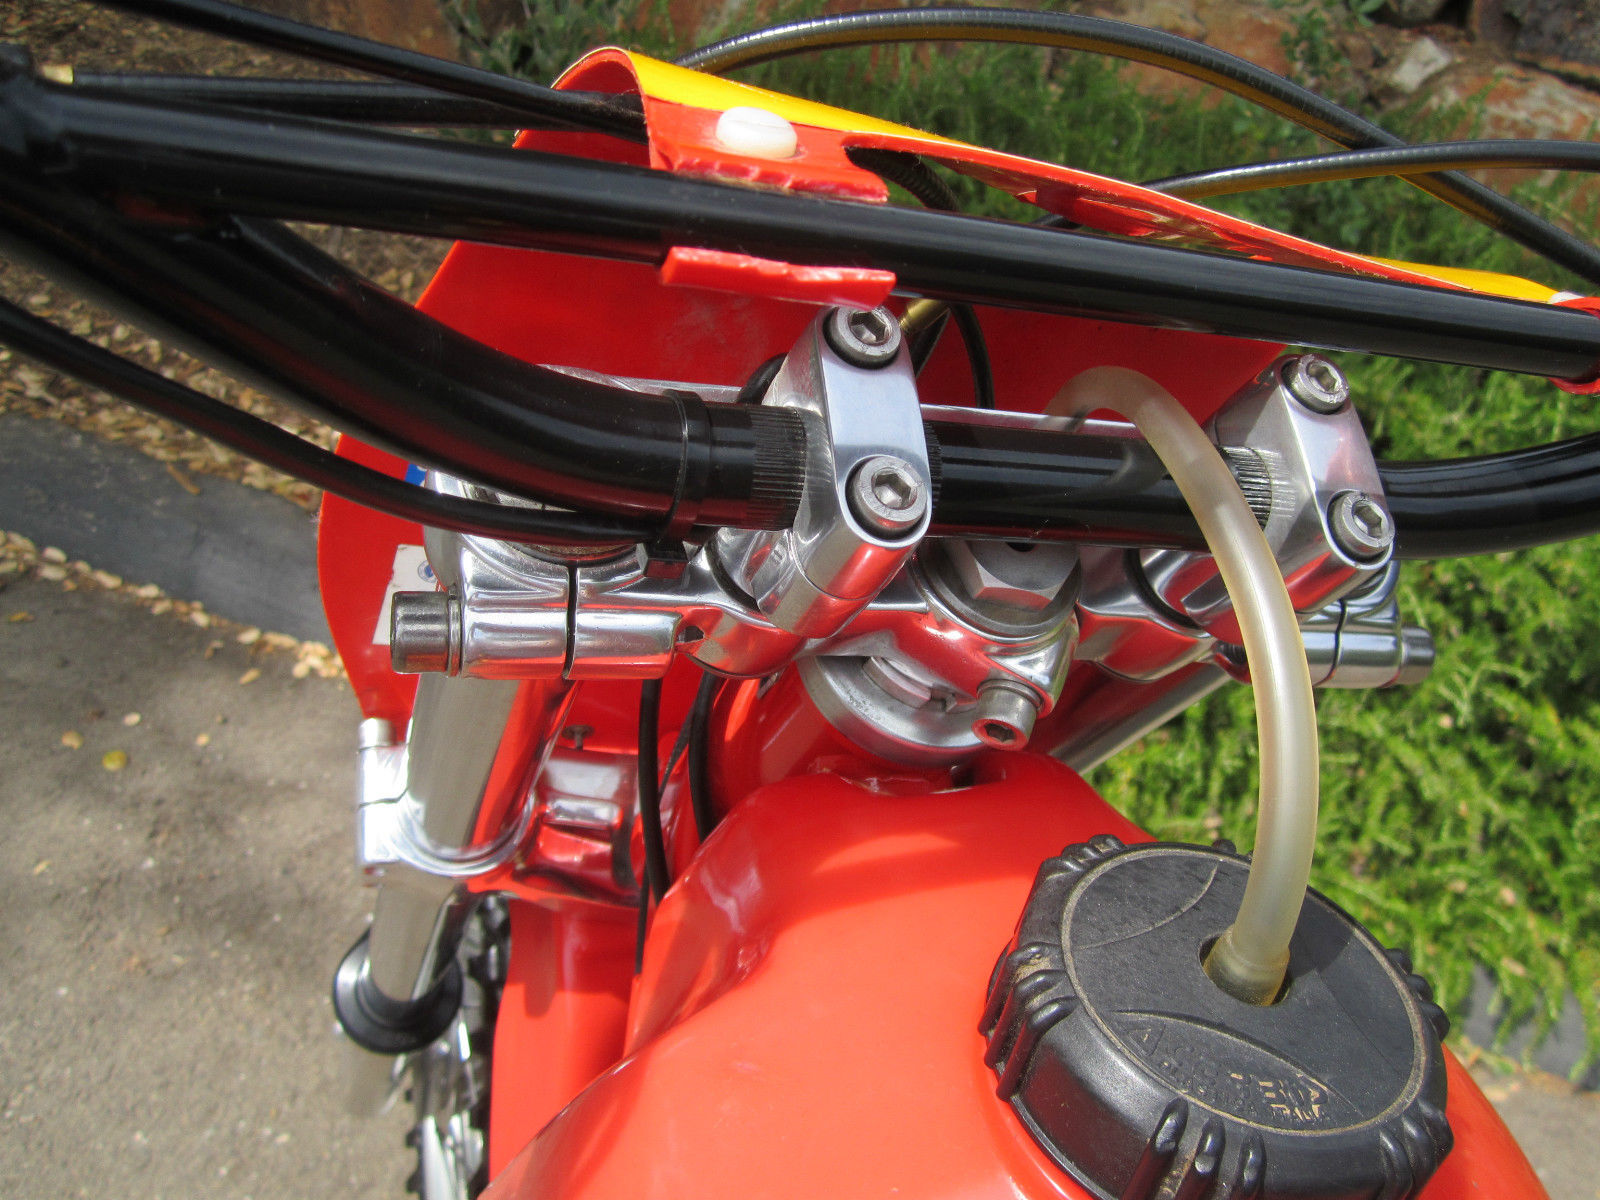 Restored Maico 490 Alpha-1 - 1982 Photographs at Classic